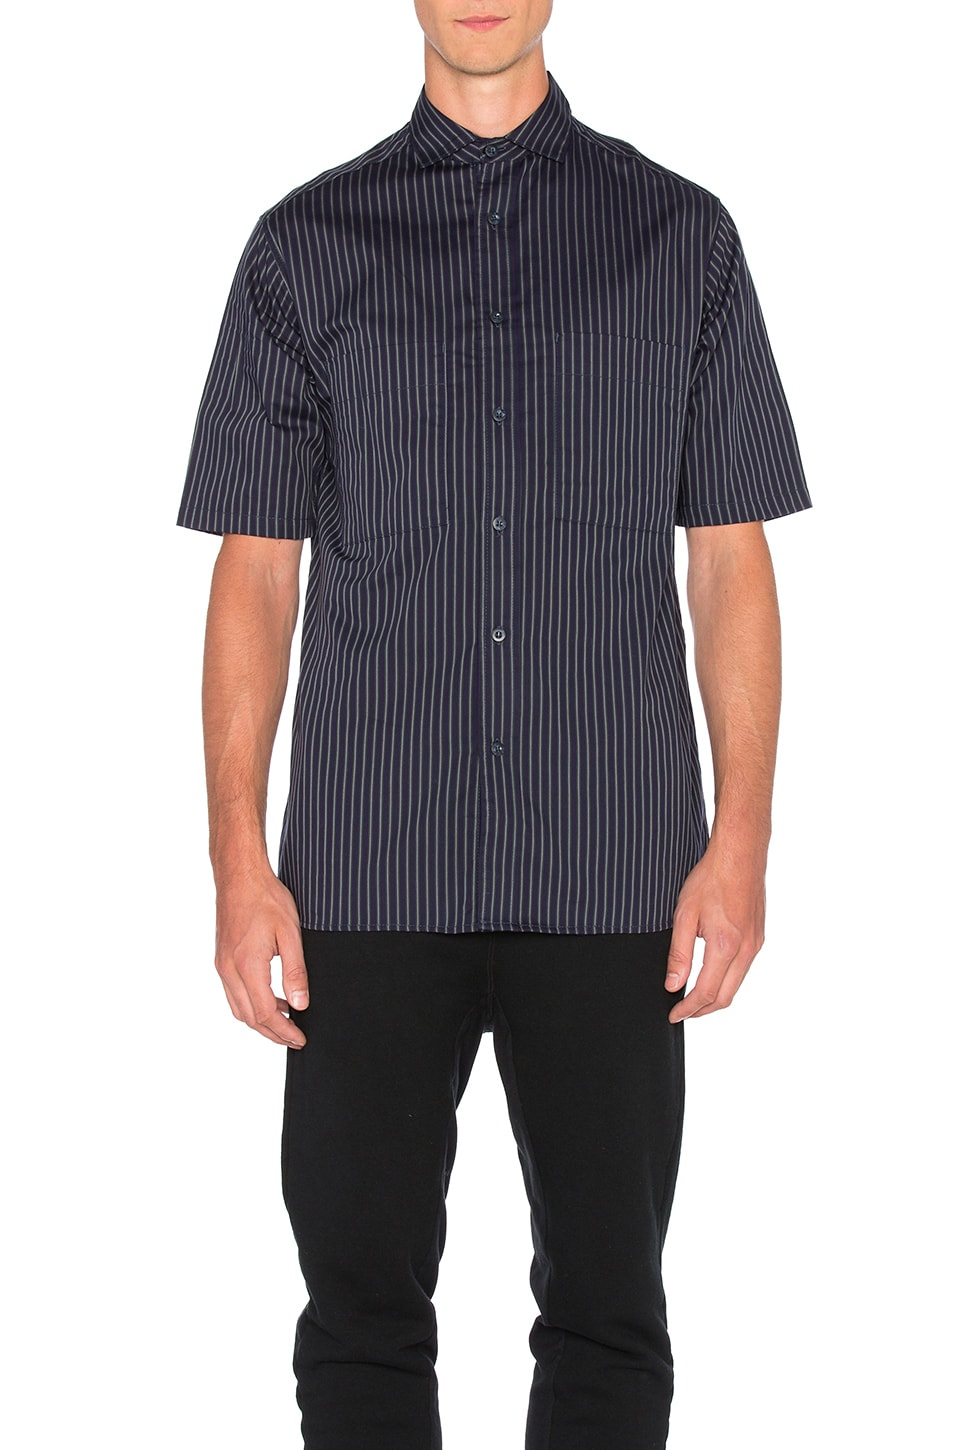 Short Sleeve Utility Shirt by Wil Fry